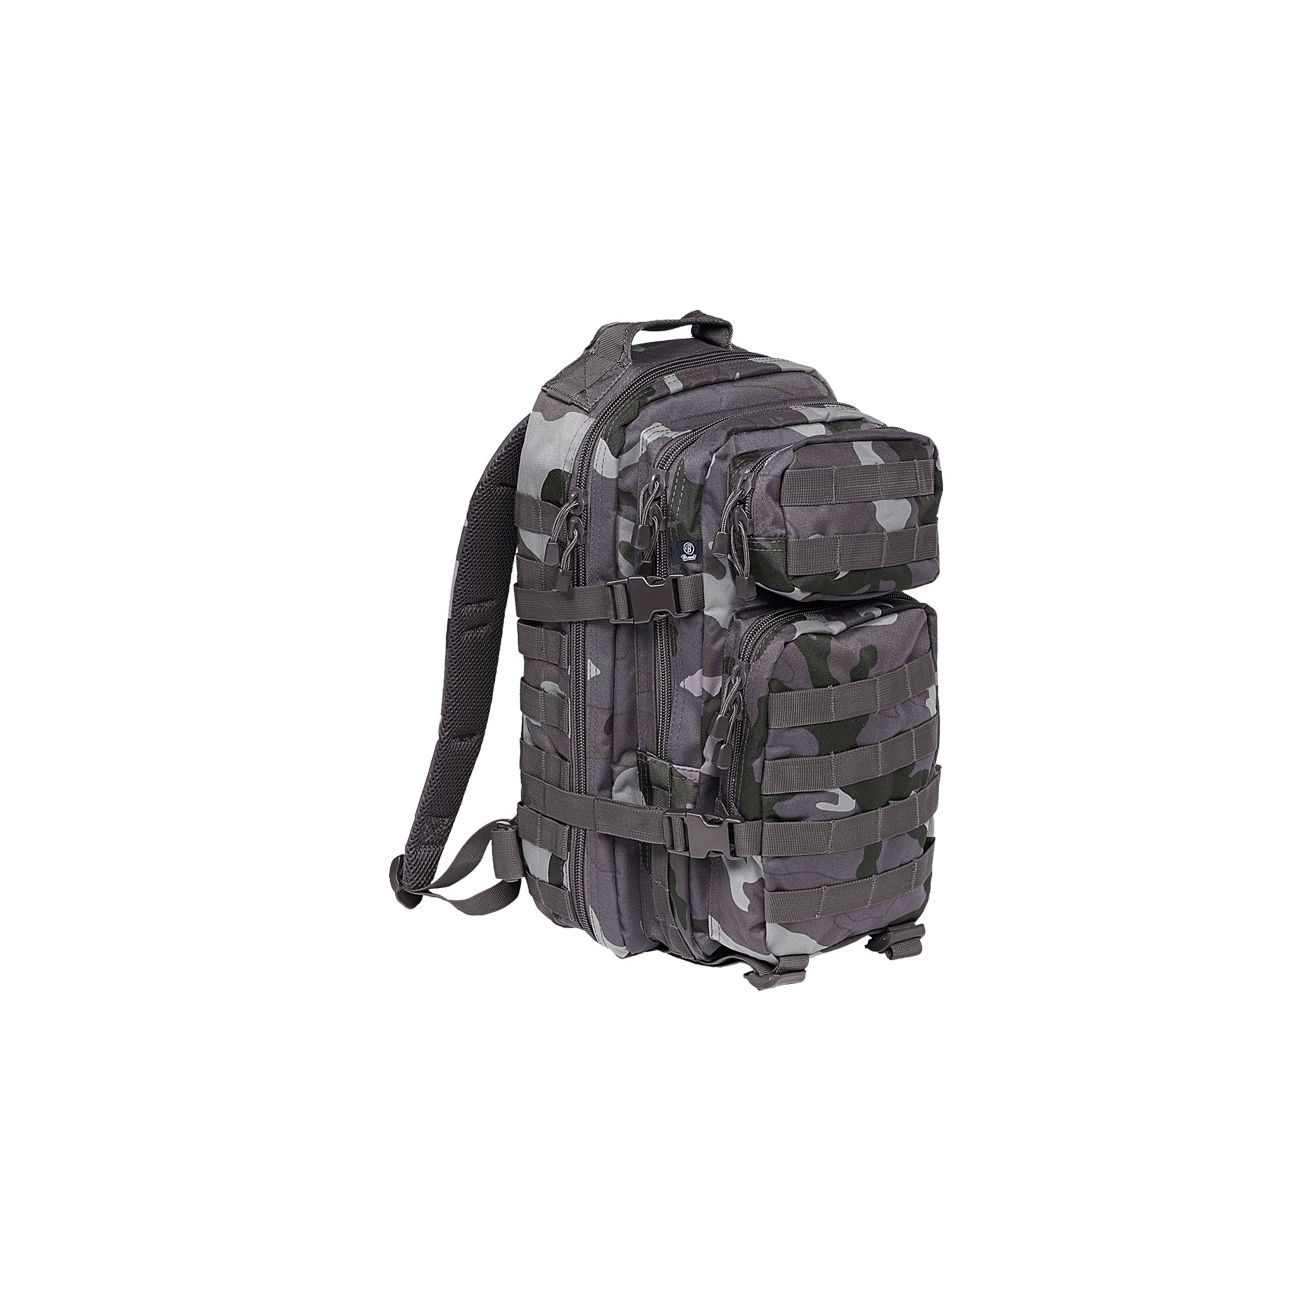 Brandit Rucksack US Cooper medium 25 L darkcamo 0